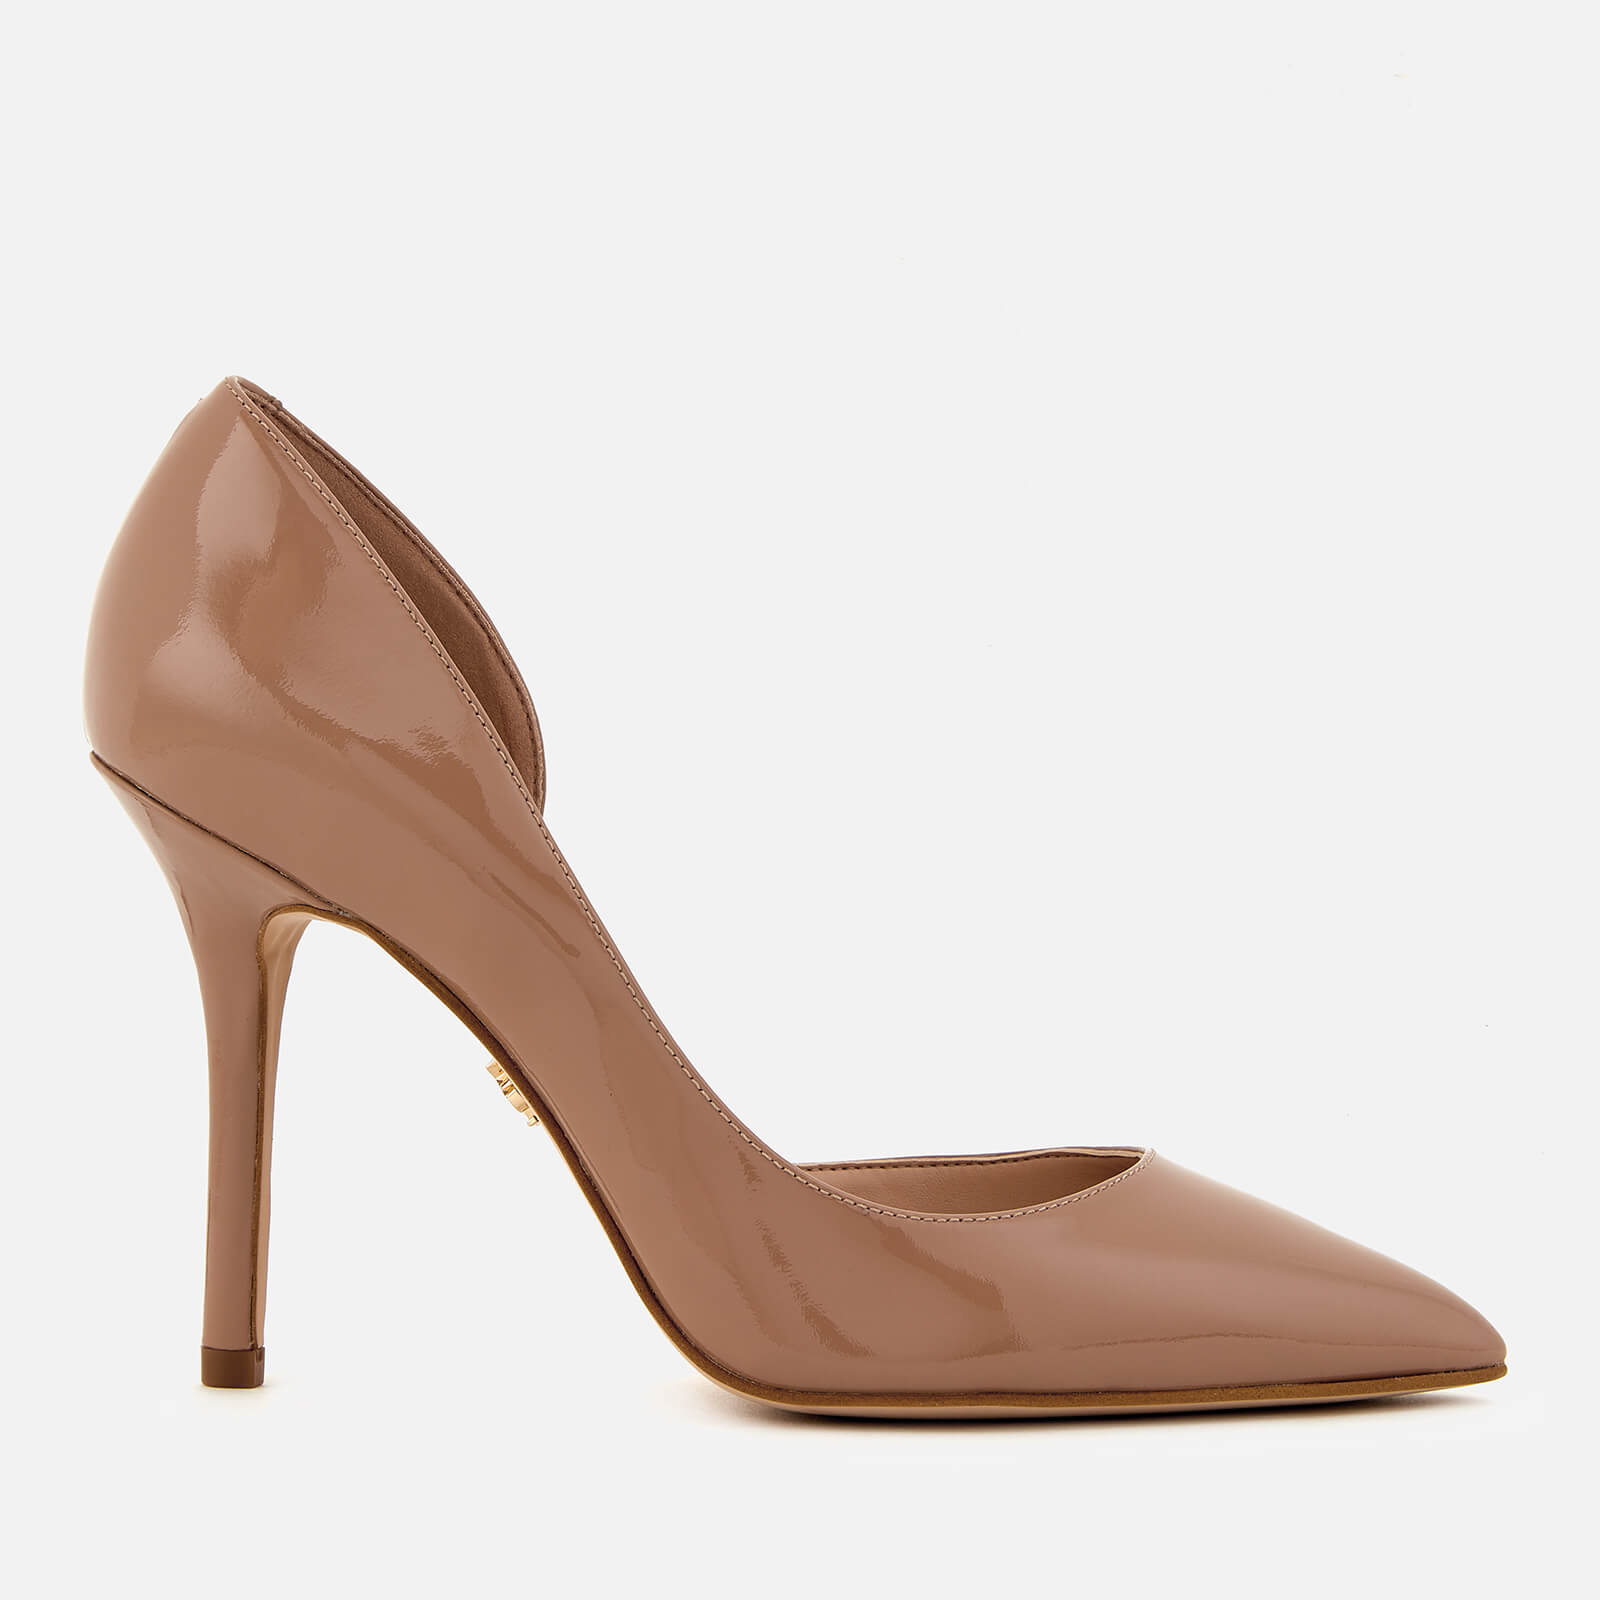 6d80fbc0cf Kurt Geiger London Women's Belgravia Patent Leather Court Shoes - Nude  Clothing | TheHut.com